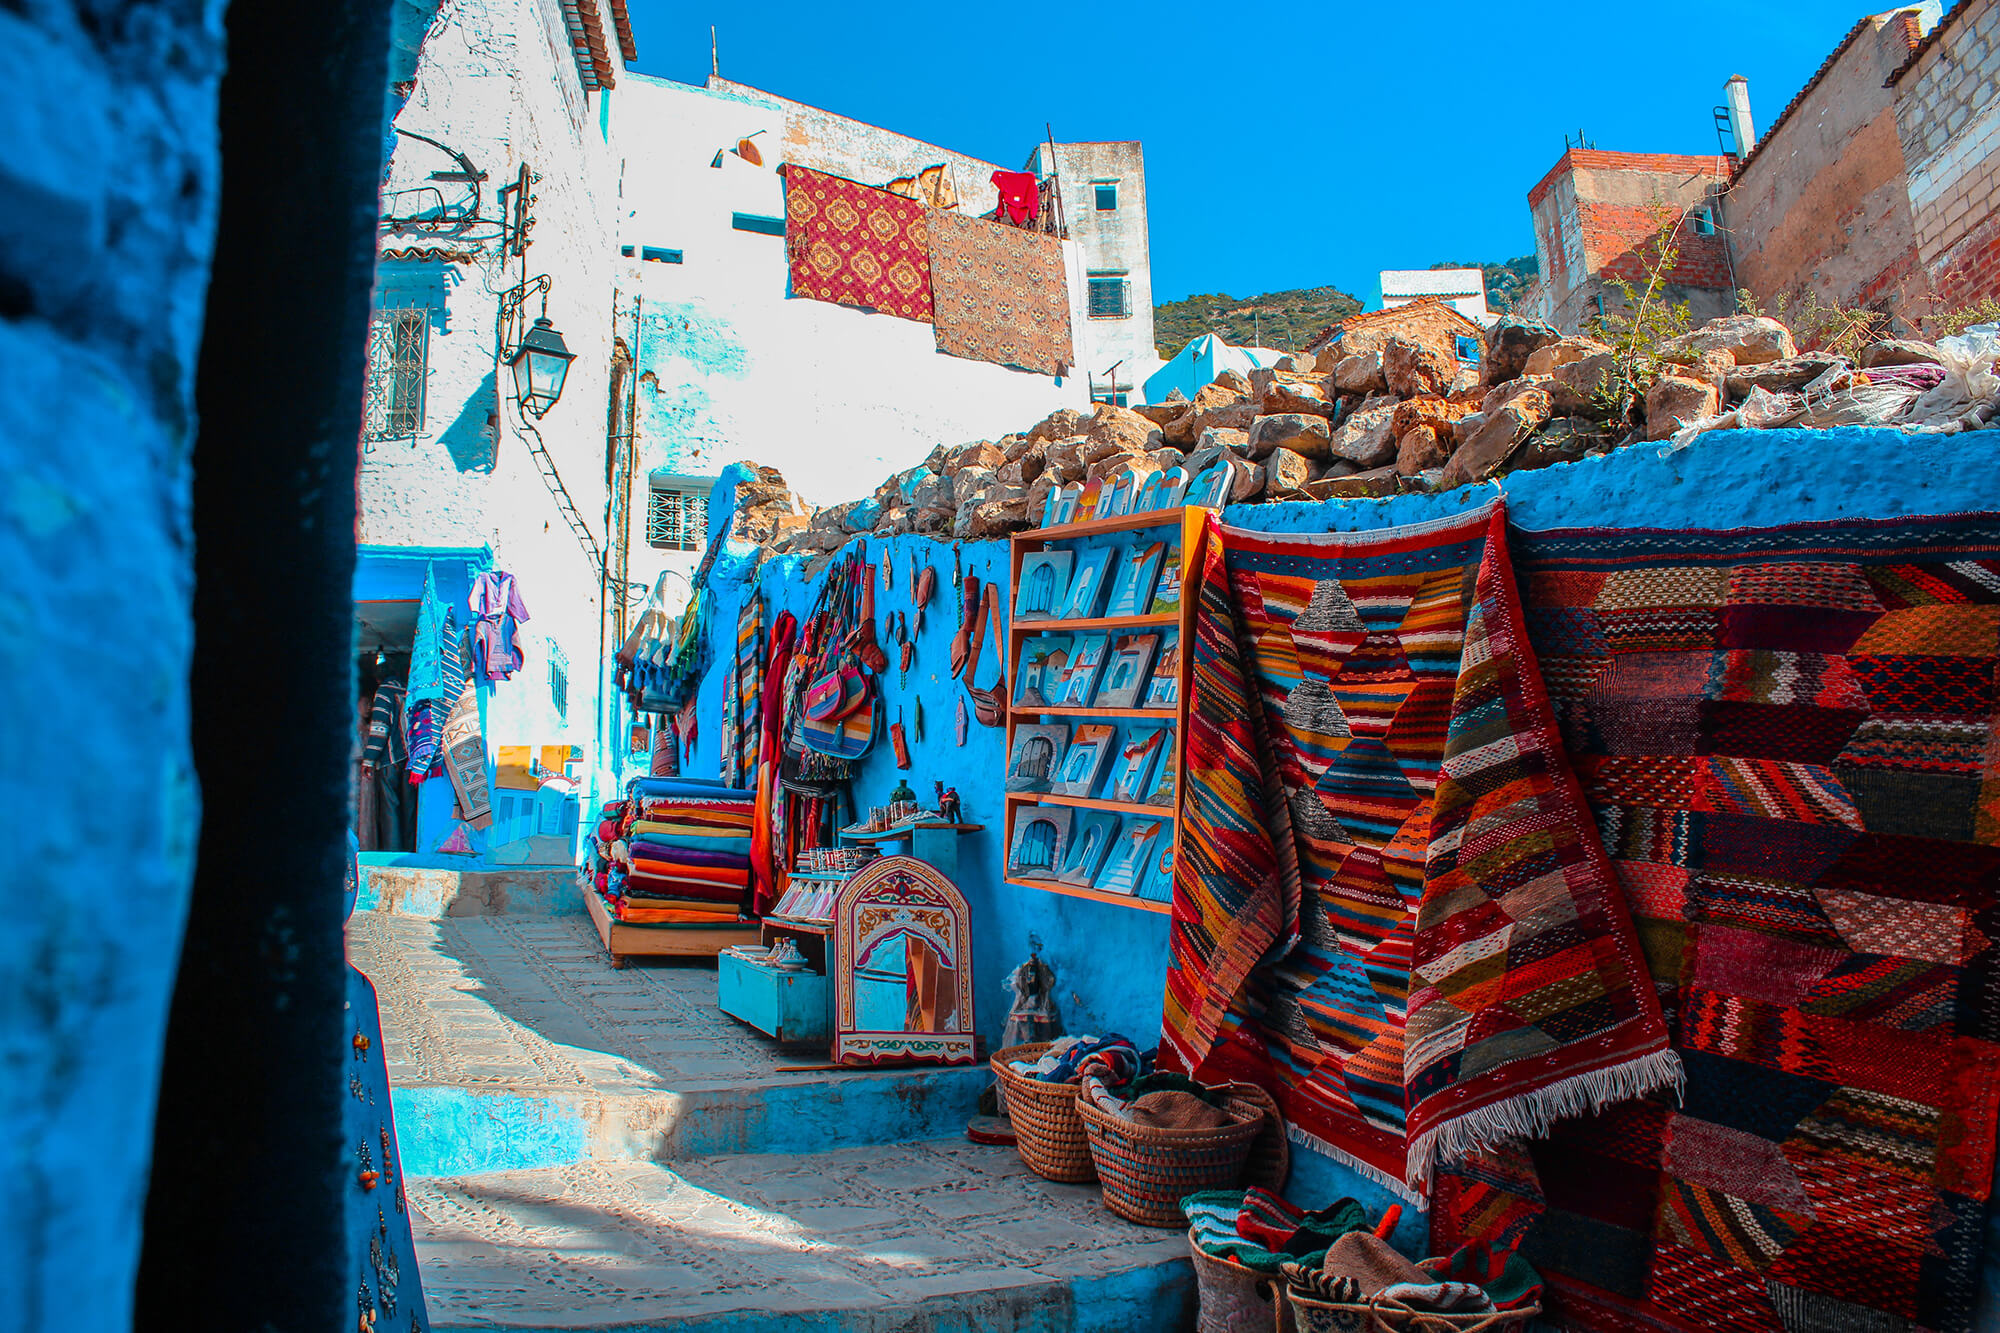 Sahara Desert Tour - Sightseeing in and around Chefchaouen - Variety of items to buy locally